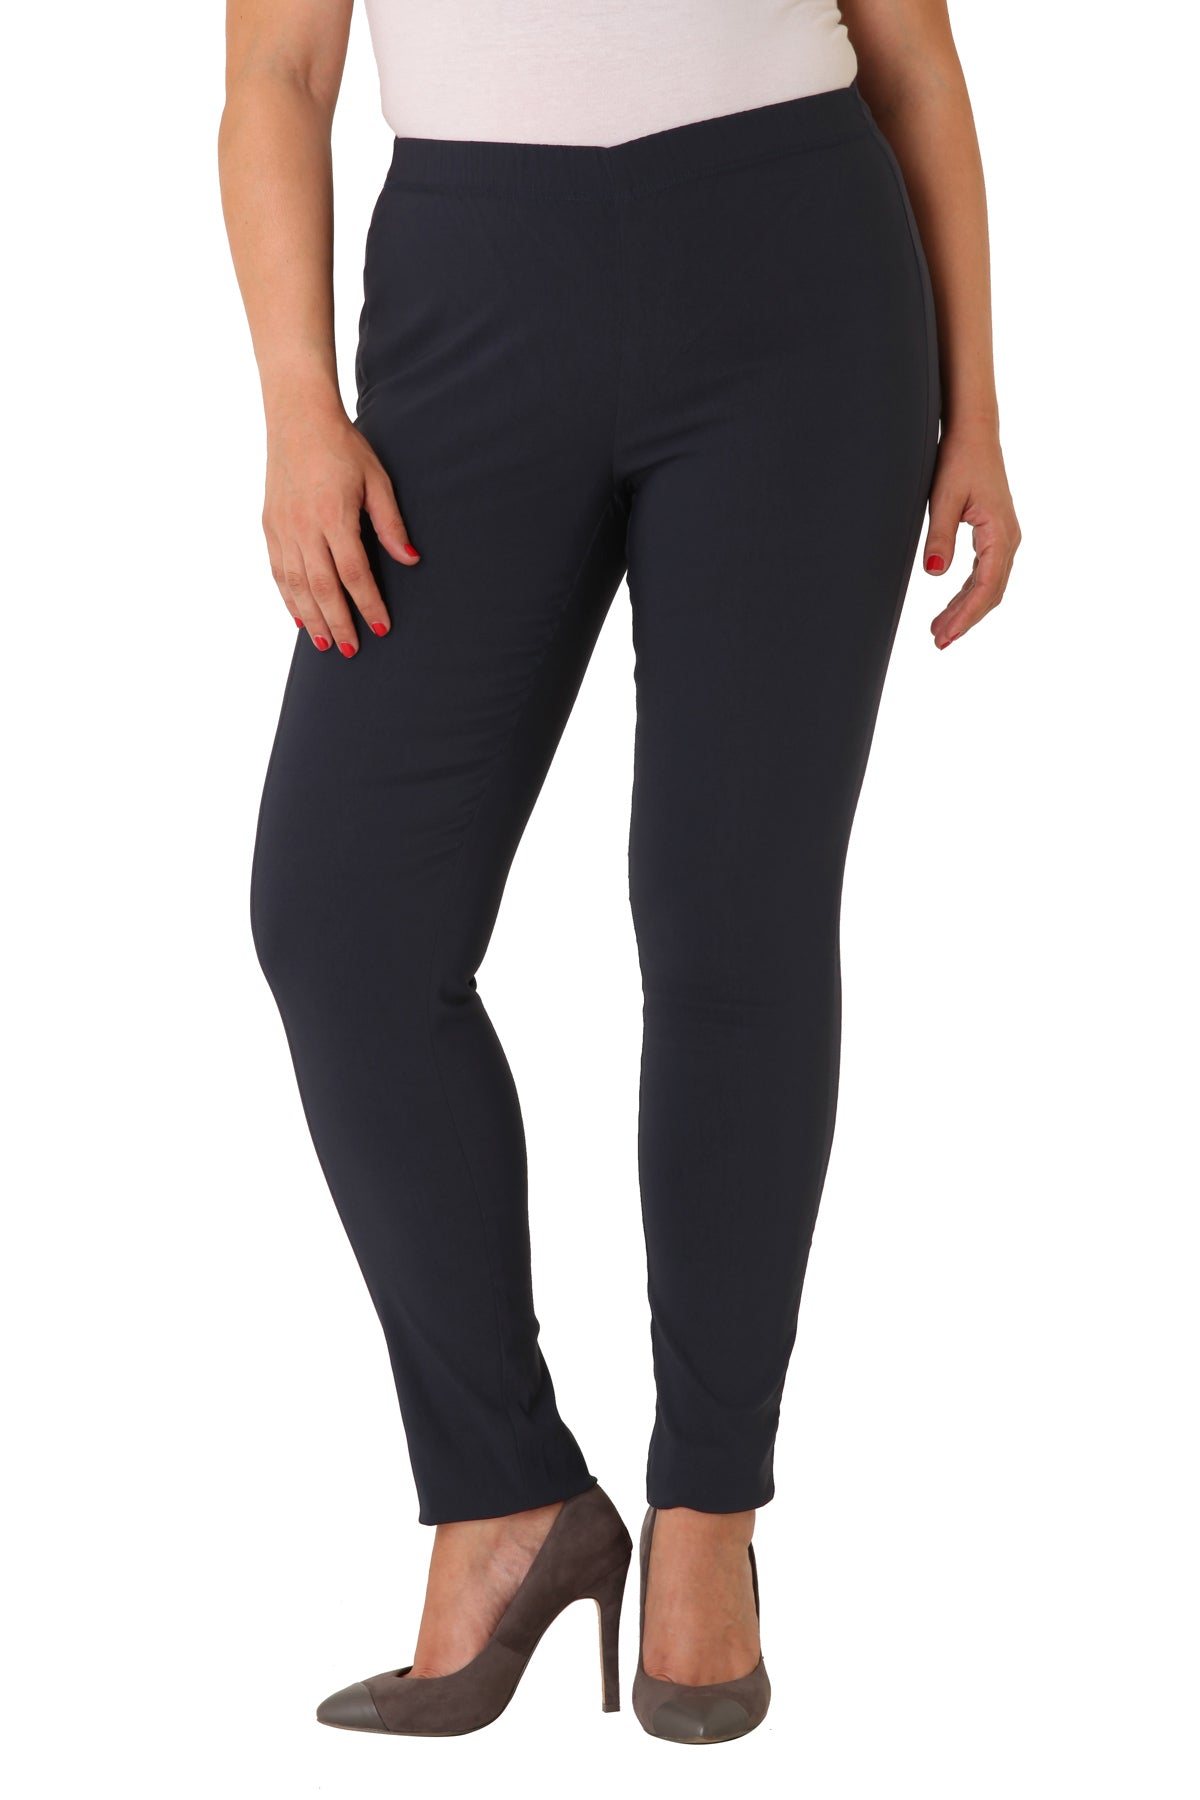 Zhenzi Strechbuxur, Twist legging fit